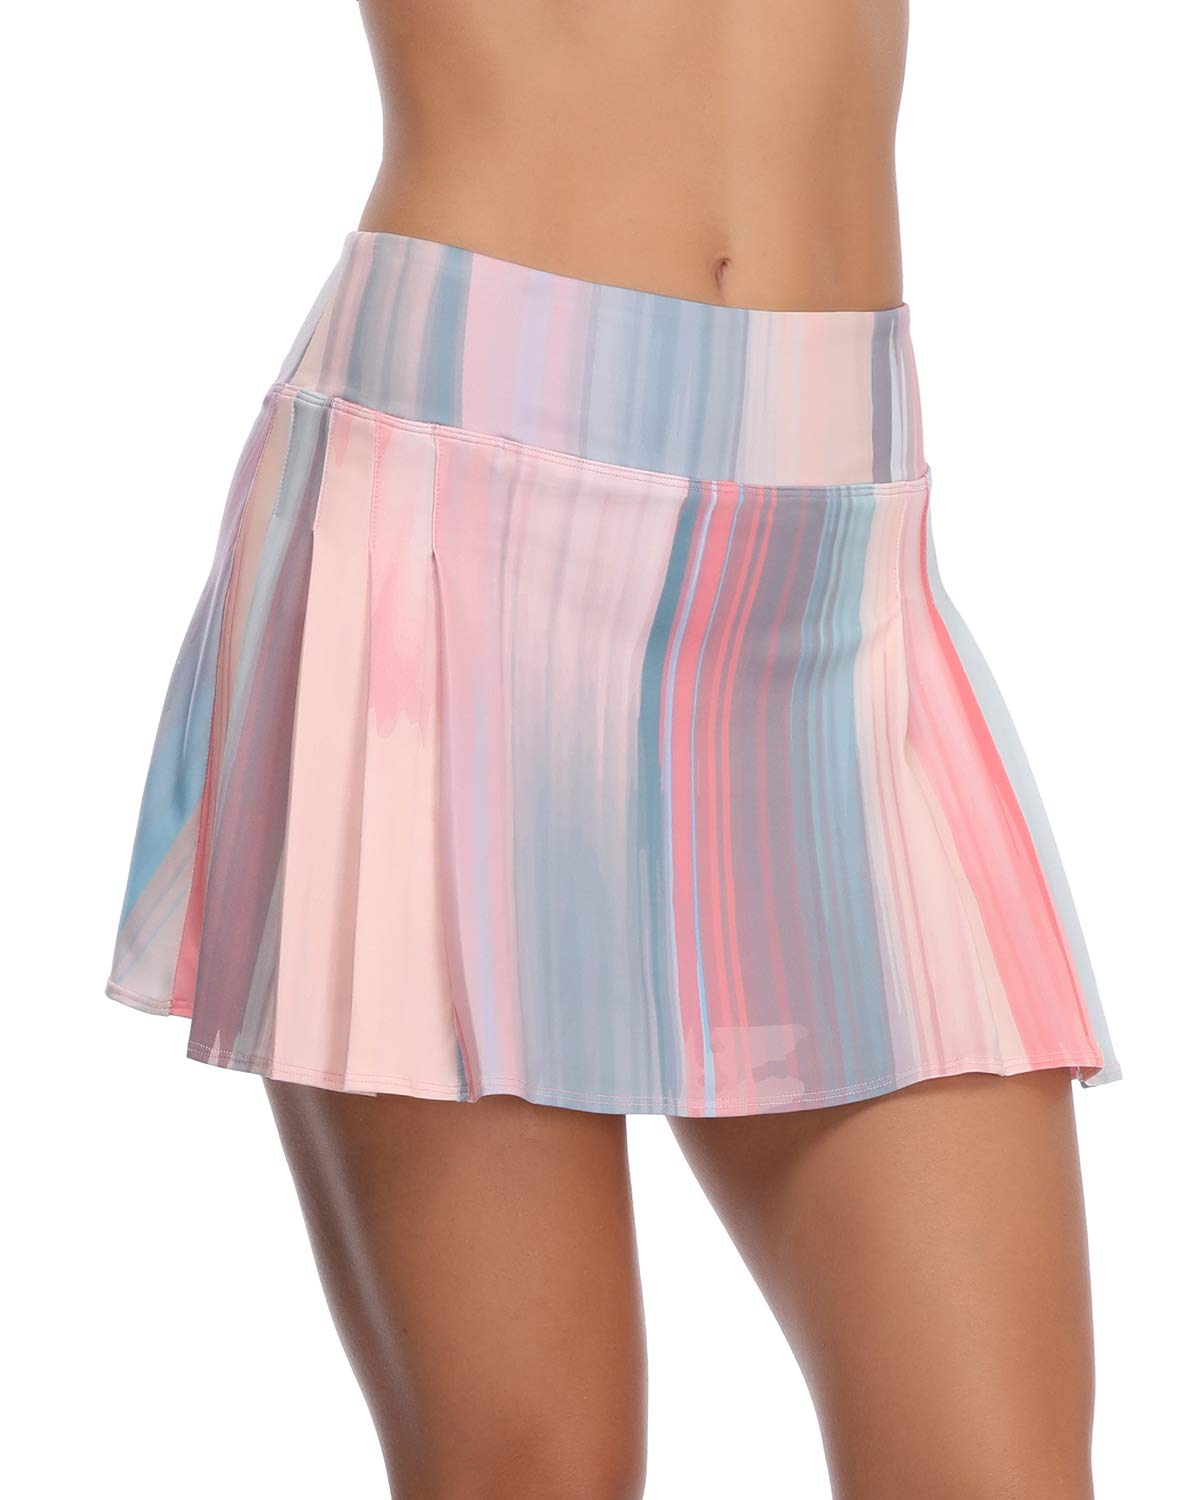 Women's Tennis Skirt Elastic Active Athletic Skort Lightweight Skirt Built-in Shorts for Running Tennis Golf Workout Rainbow by RainbowTree